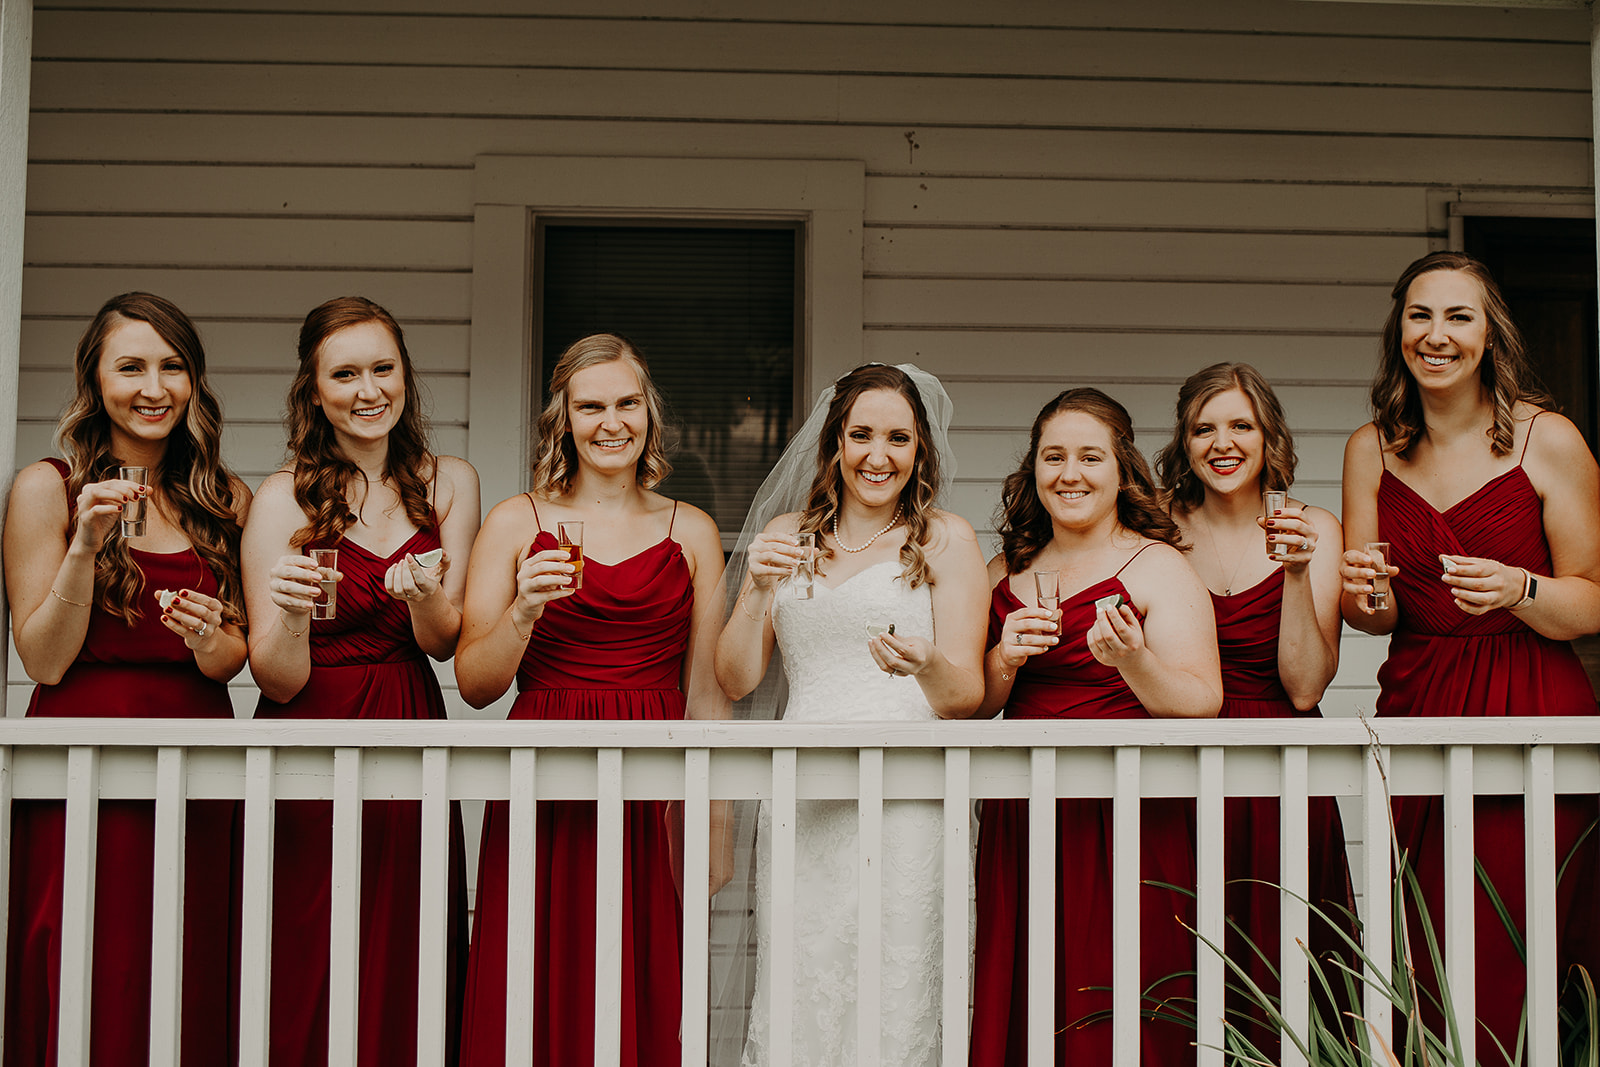 cattle-barn-wedding-cle-elum-wedding-megan-gallagher-photography-winston-salem-photographer (9).jpg